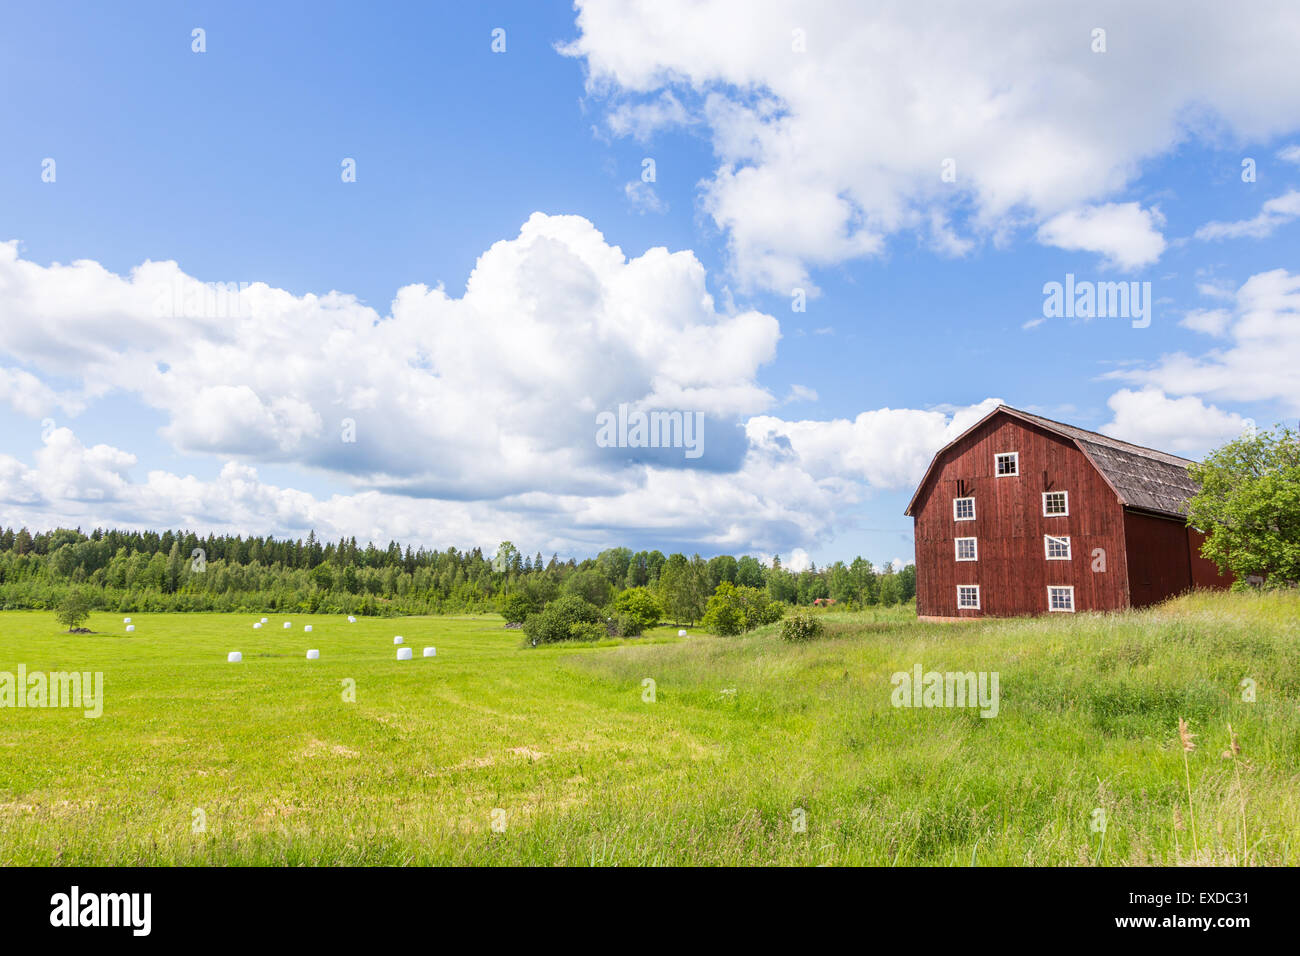 Scenic View of an Old Barn with White Silage Balls with a Blue Sky - Stock Image